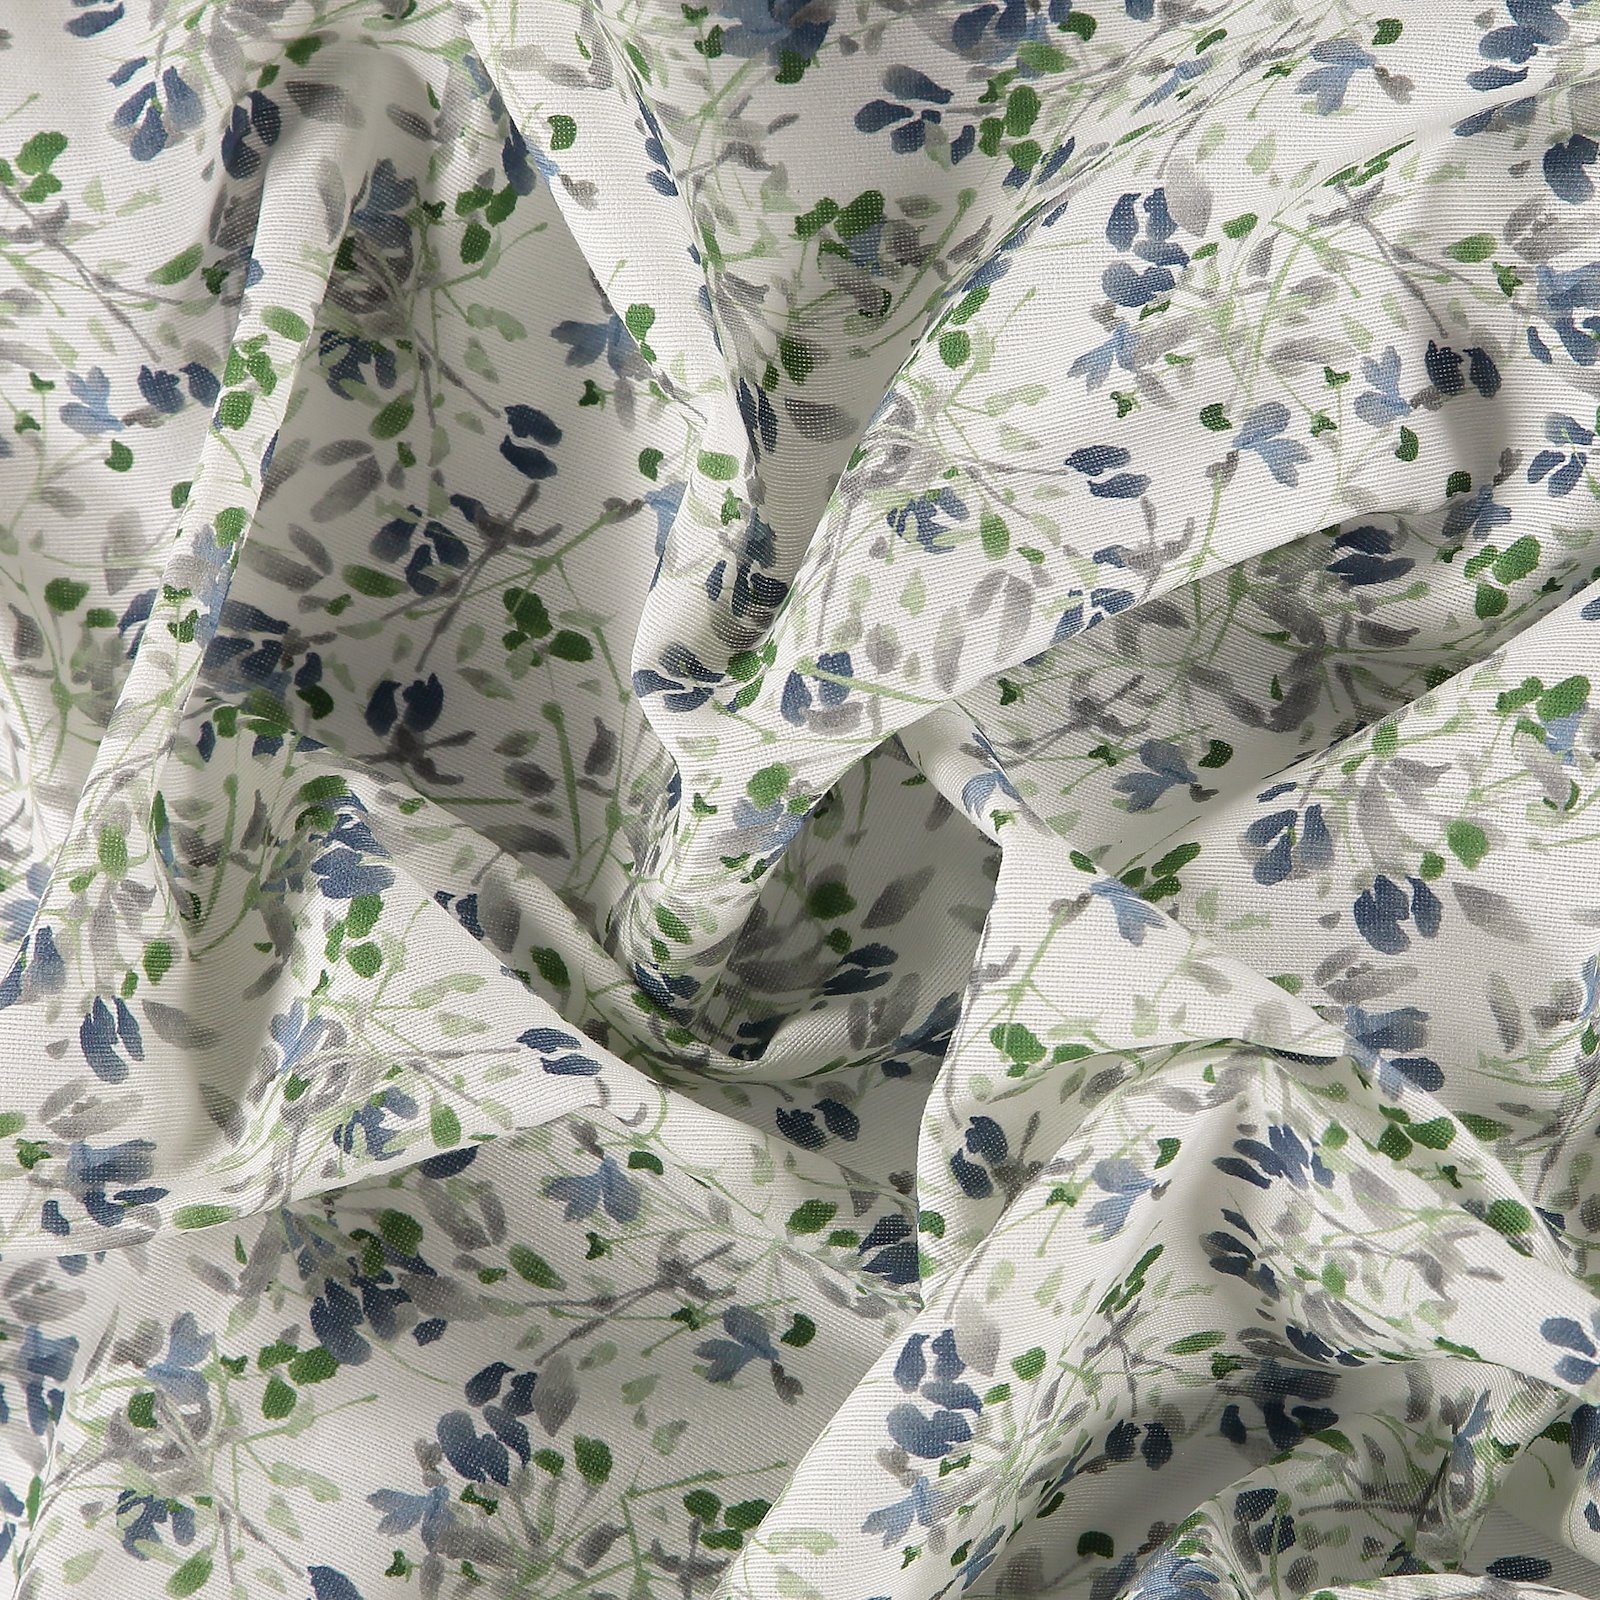 Woven white with blue/grey/green flowers